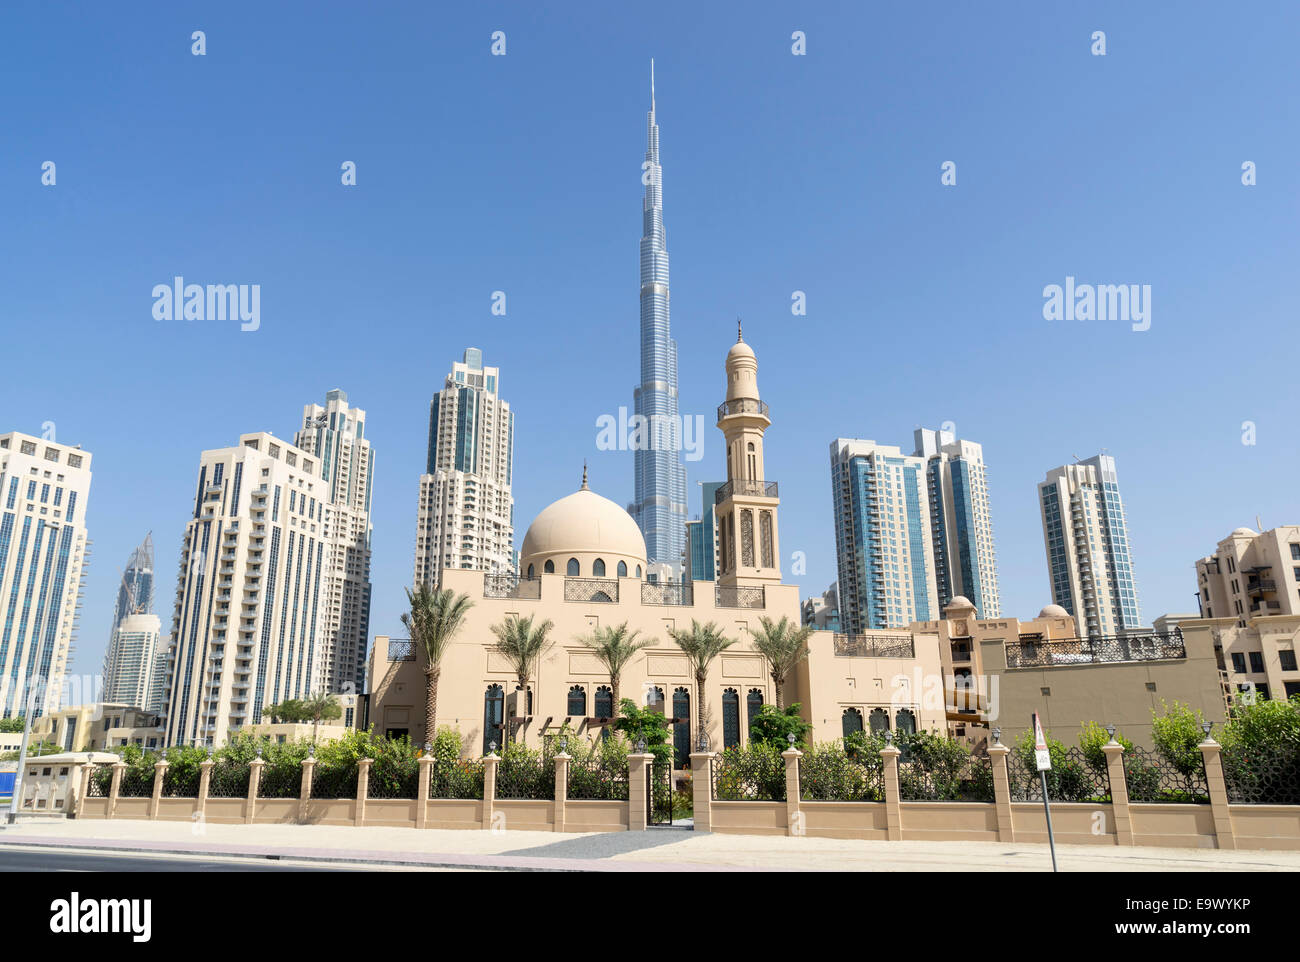 New mosque and view of Burj Khalifa in Downtown Dubai United Arab Emirates - Stock Image